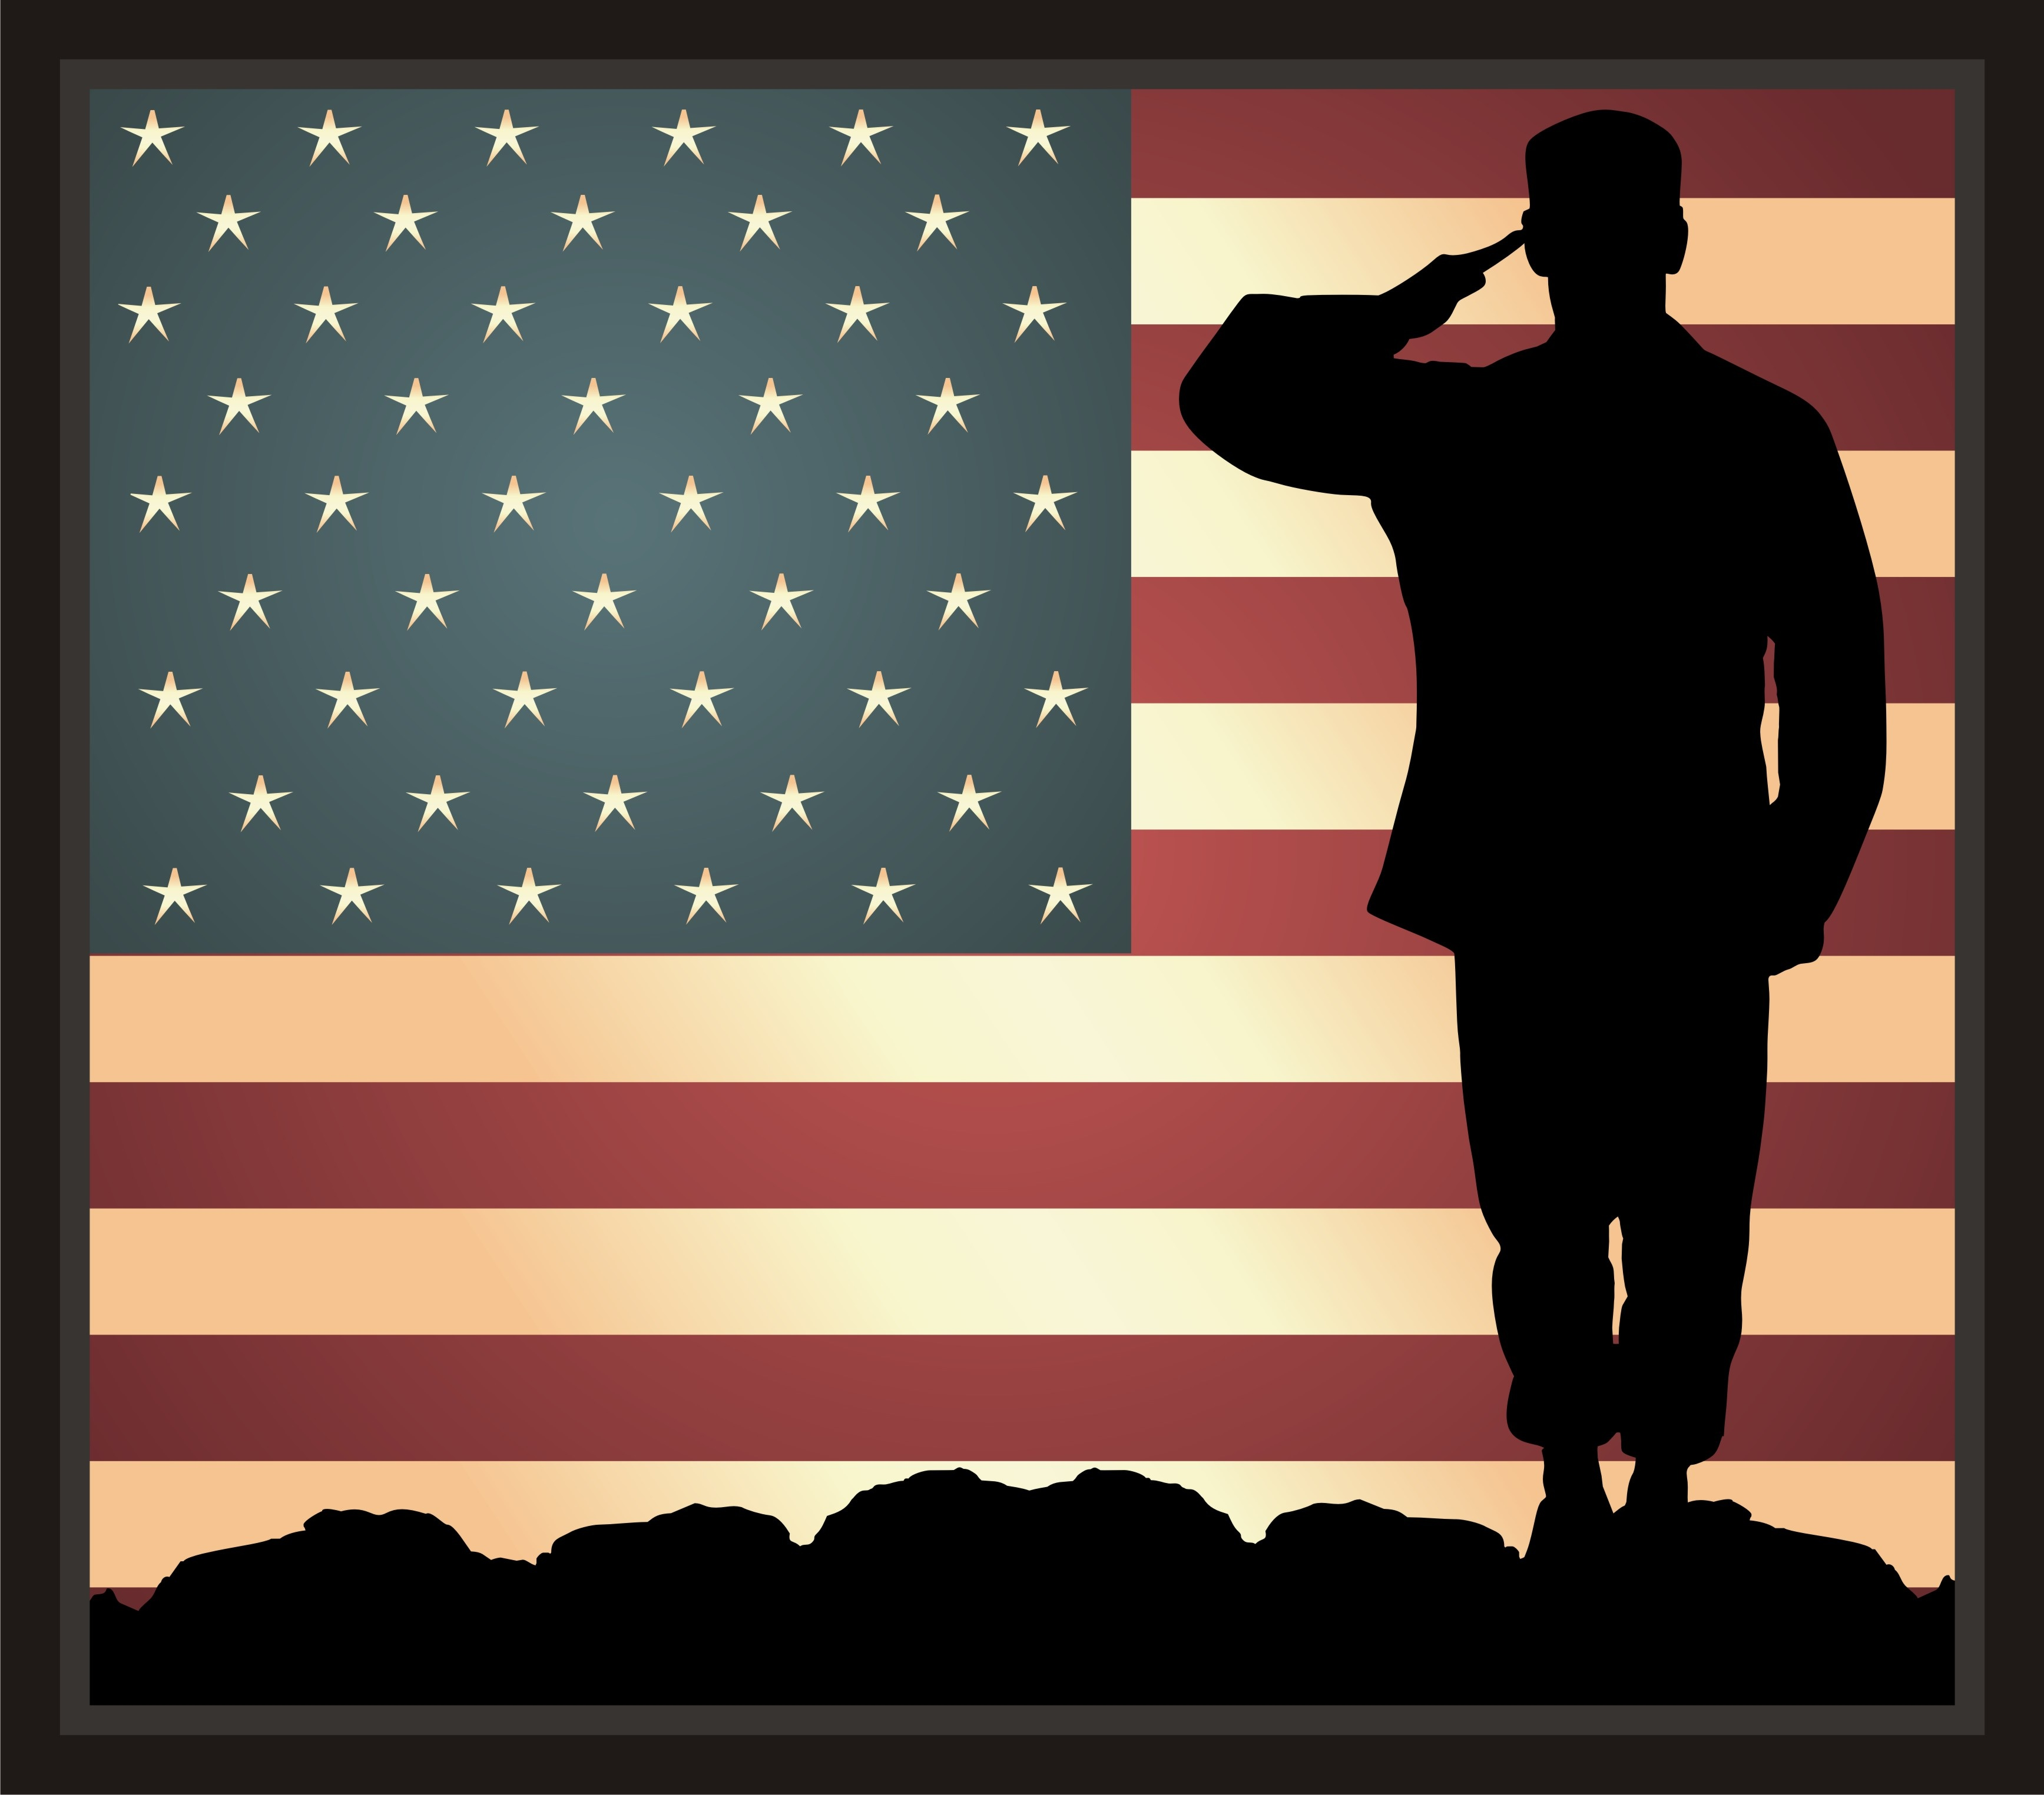 soldier salute the red white blue